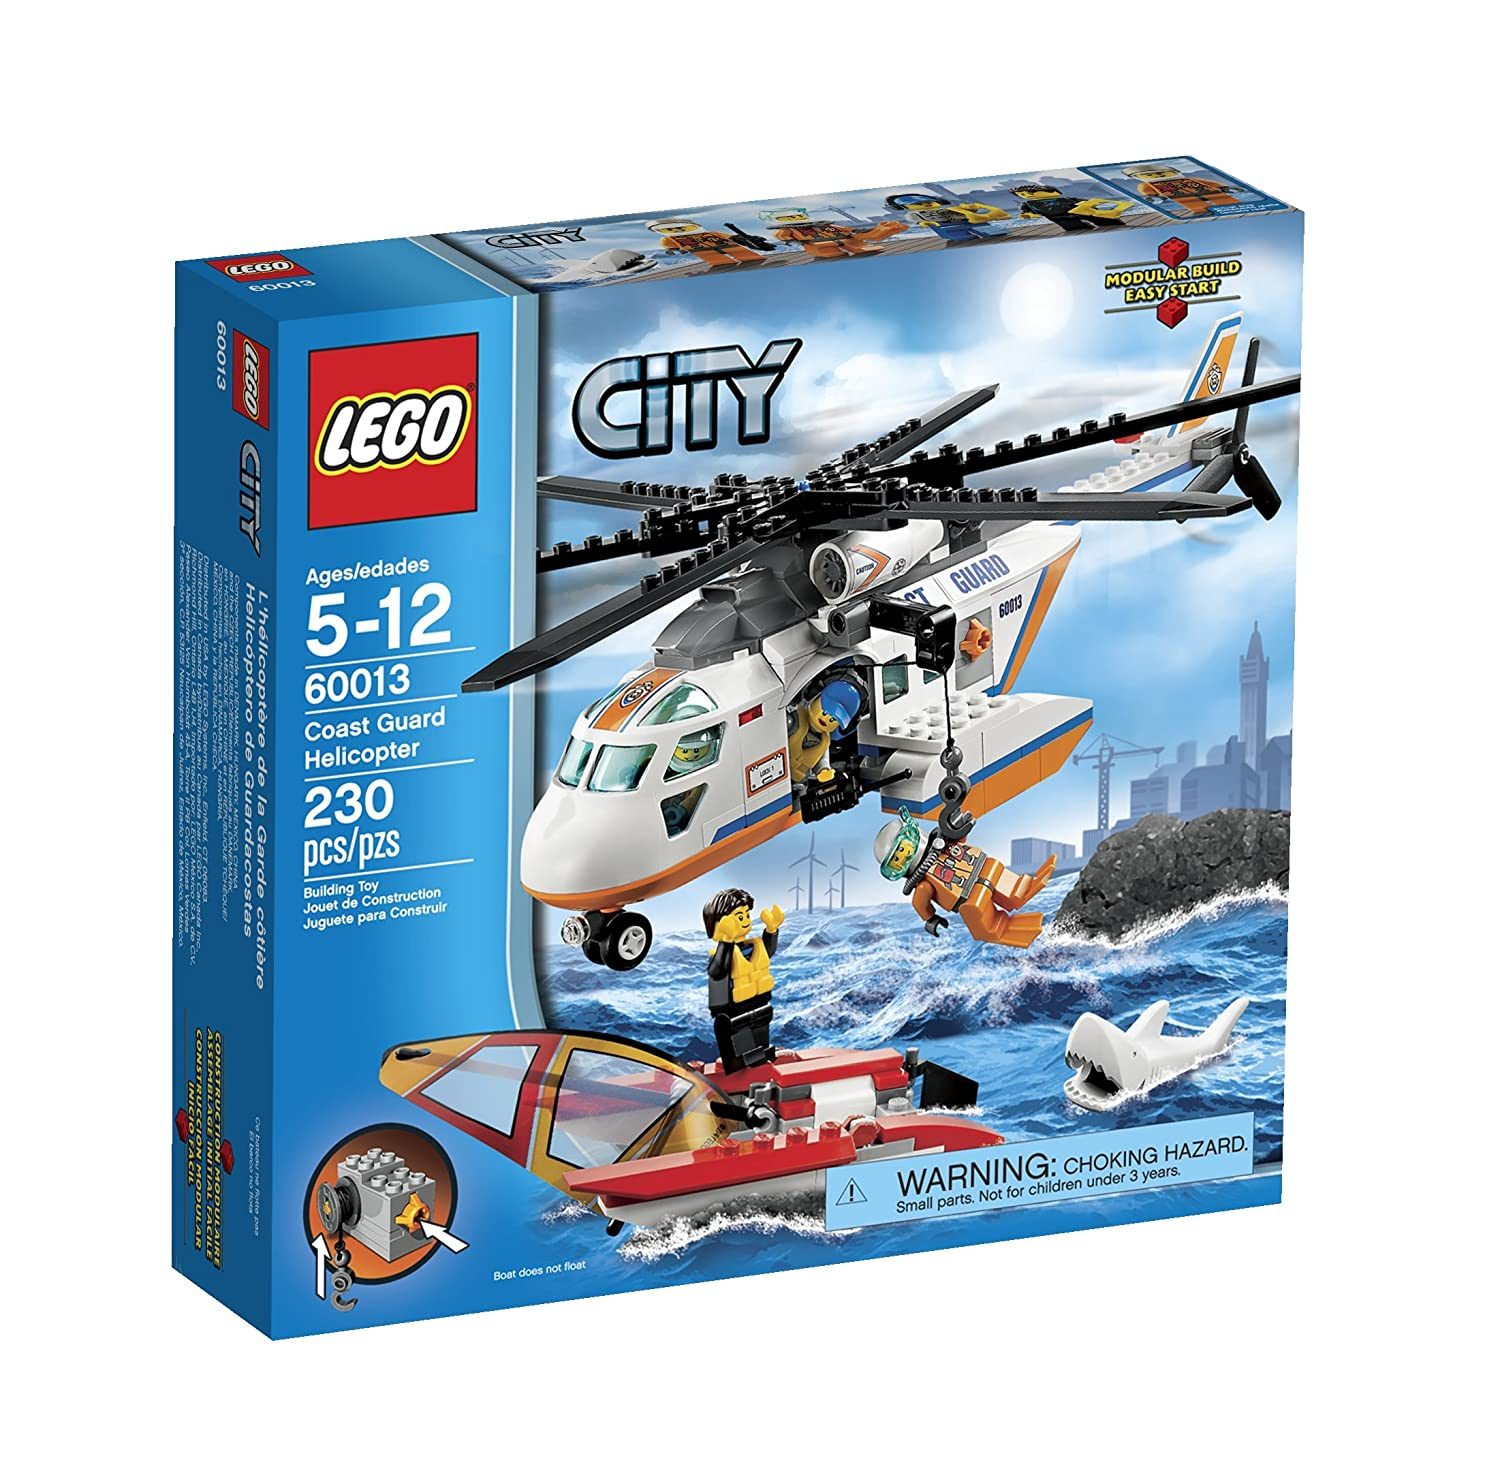 Top 9 Best LEGO Helicopter Sets Reviews in 2020 2